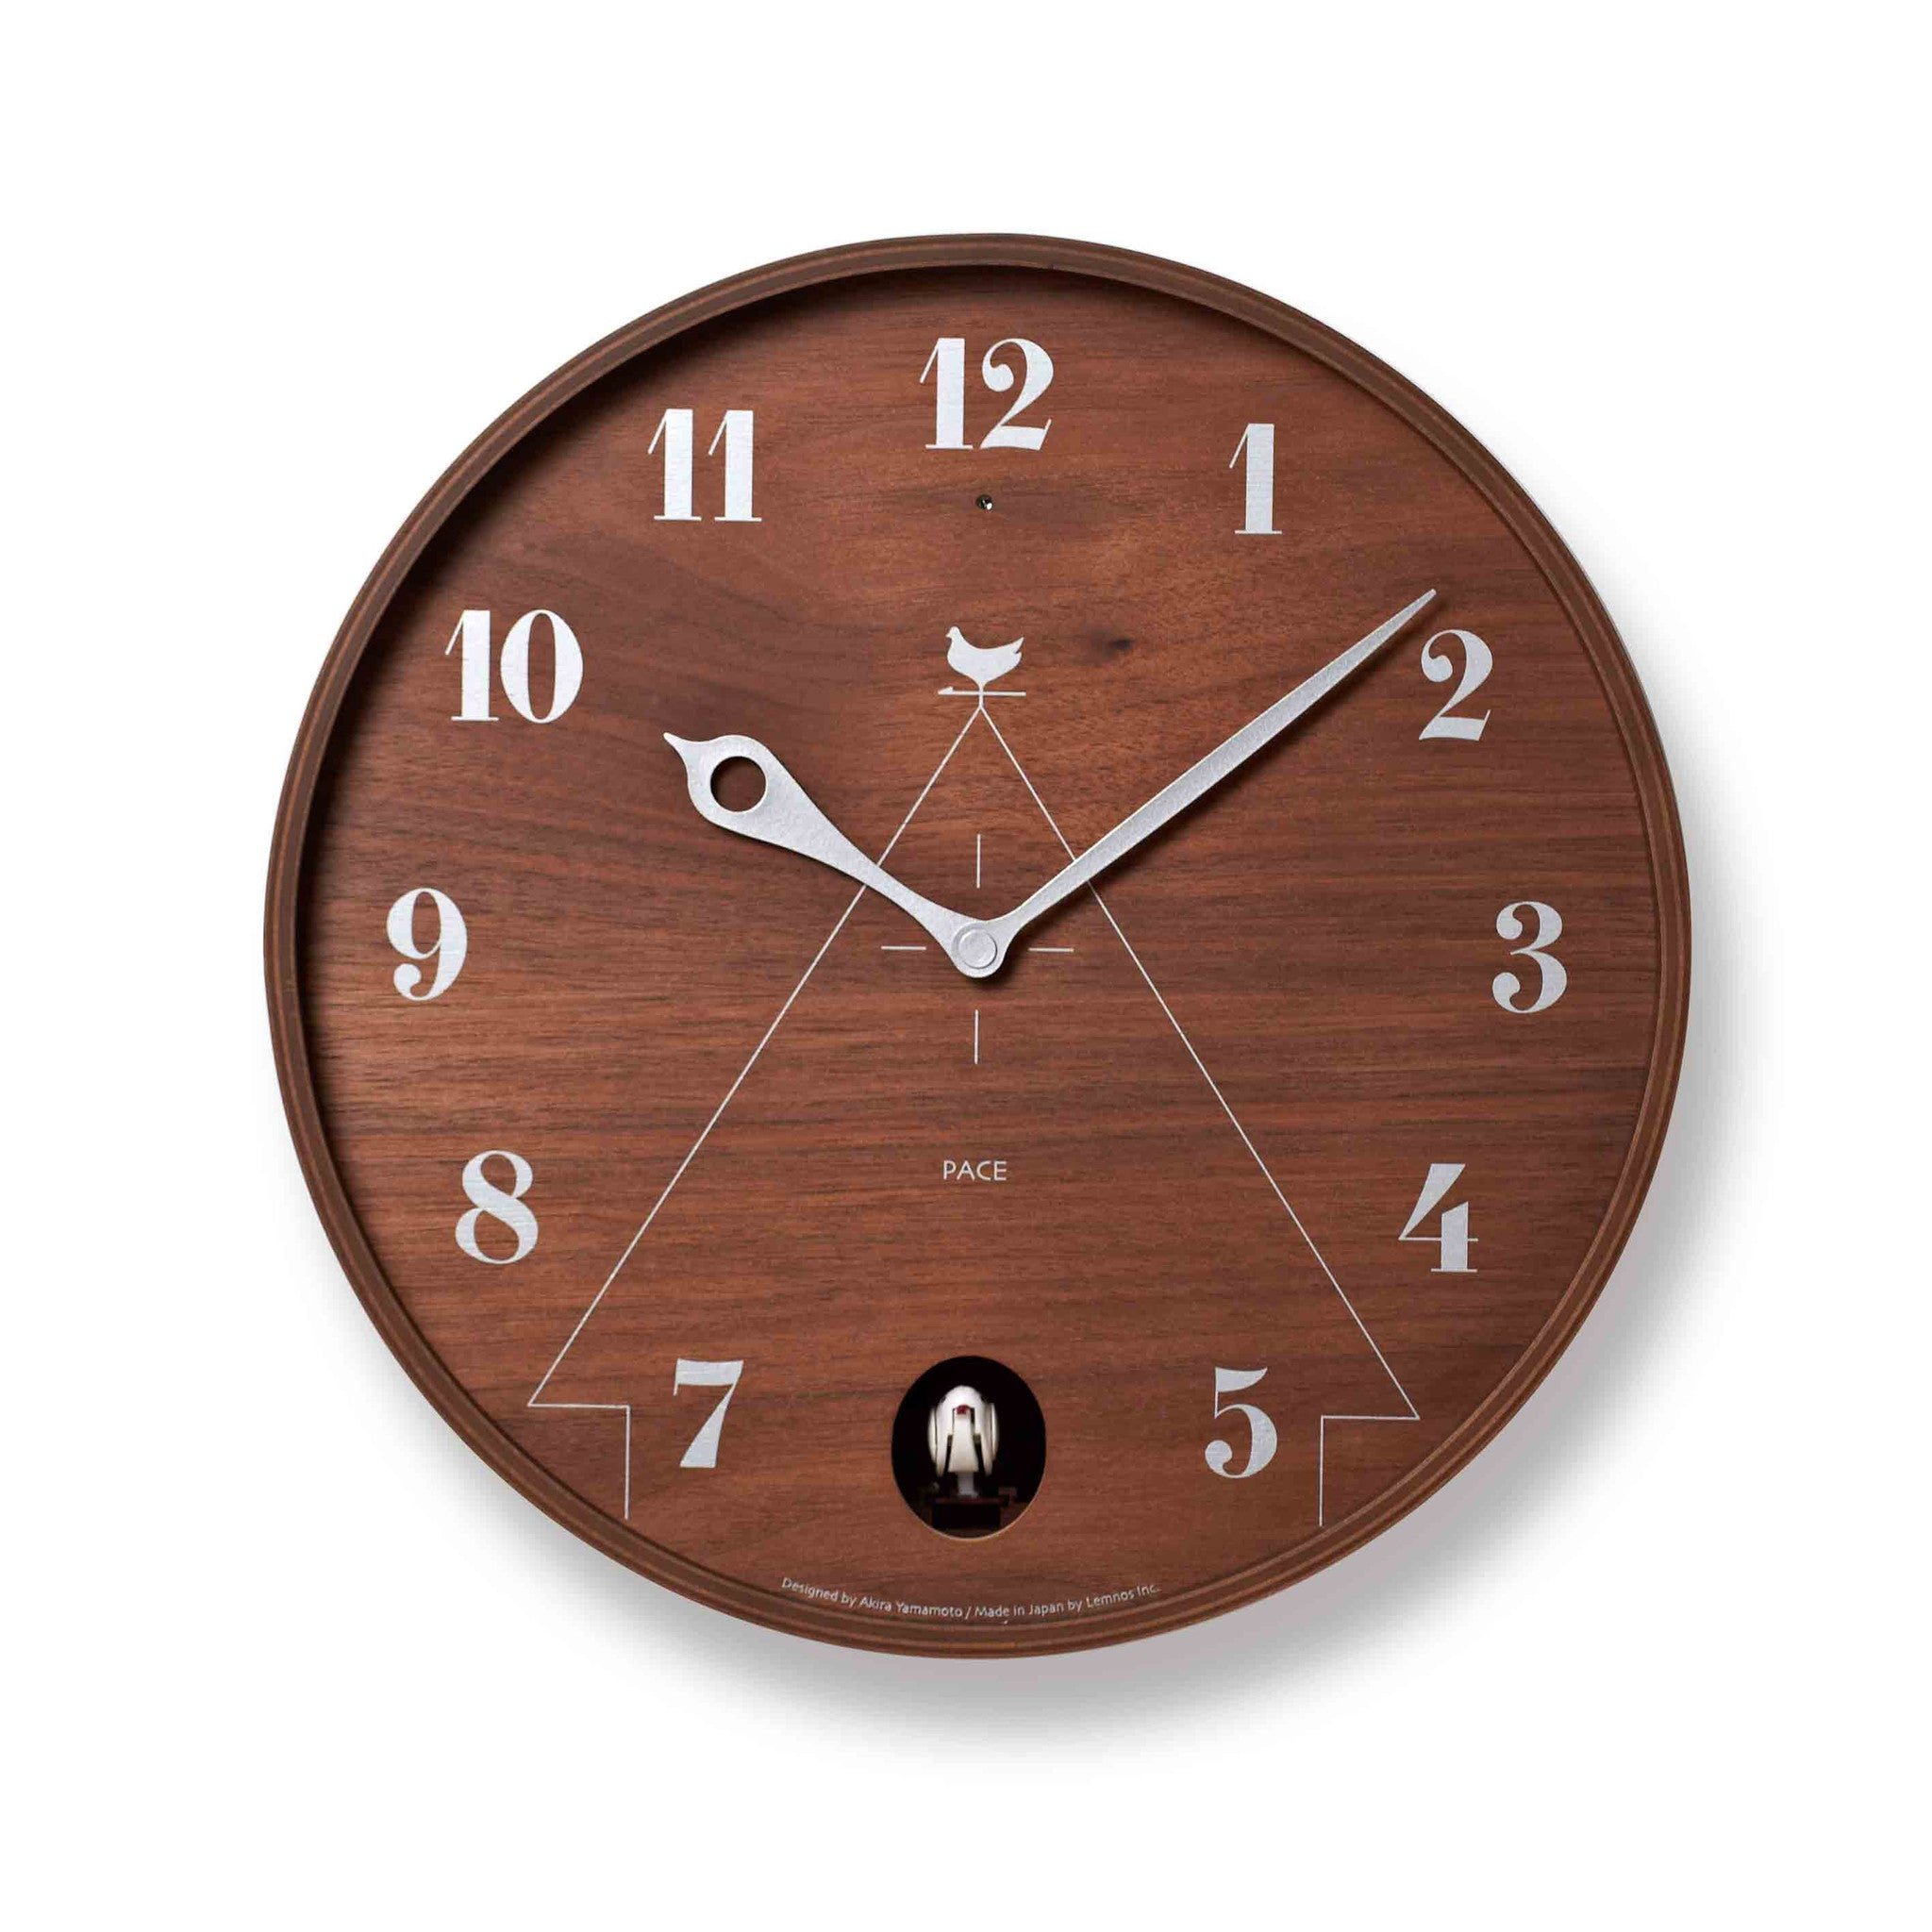 Pace wall clock 305cm natural wood by lemnos cuckoo collections cuckoo clock pace wall clock 305cm dark wood by lemnos amipublicfo Image collections